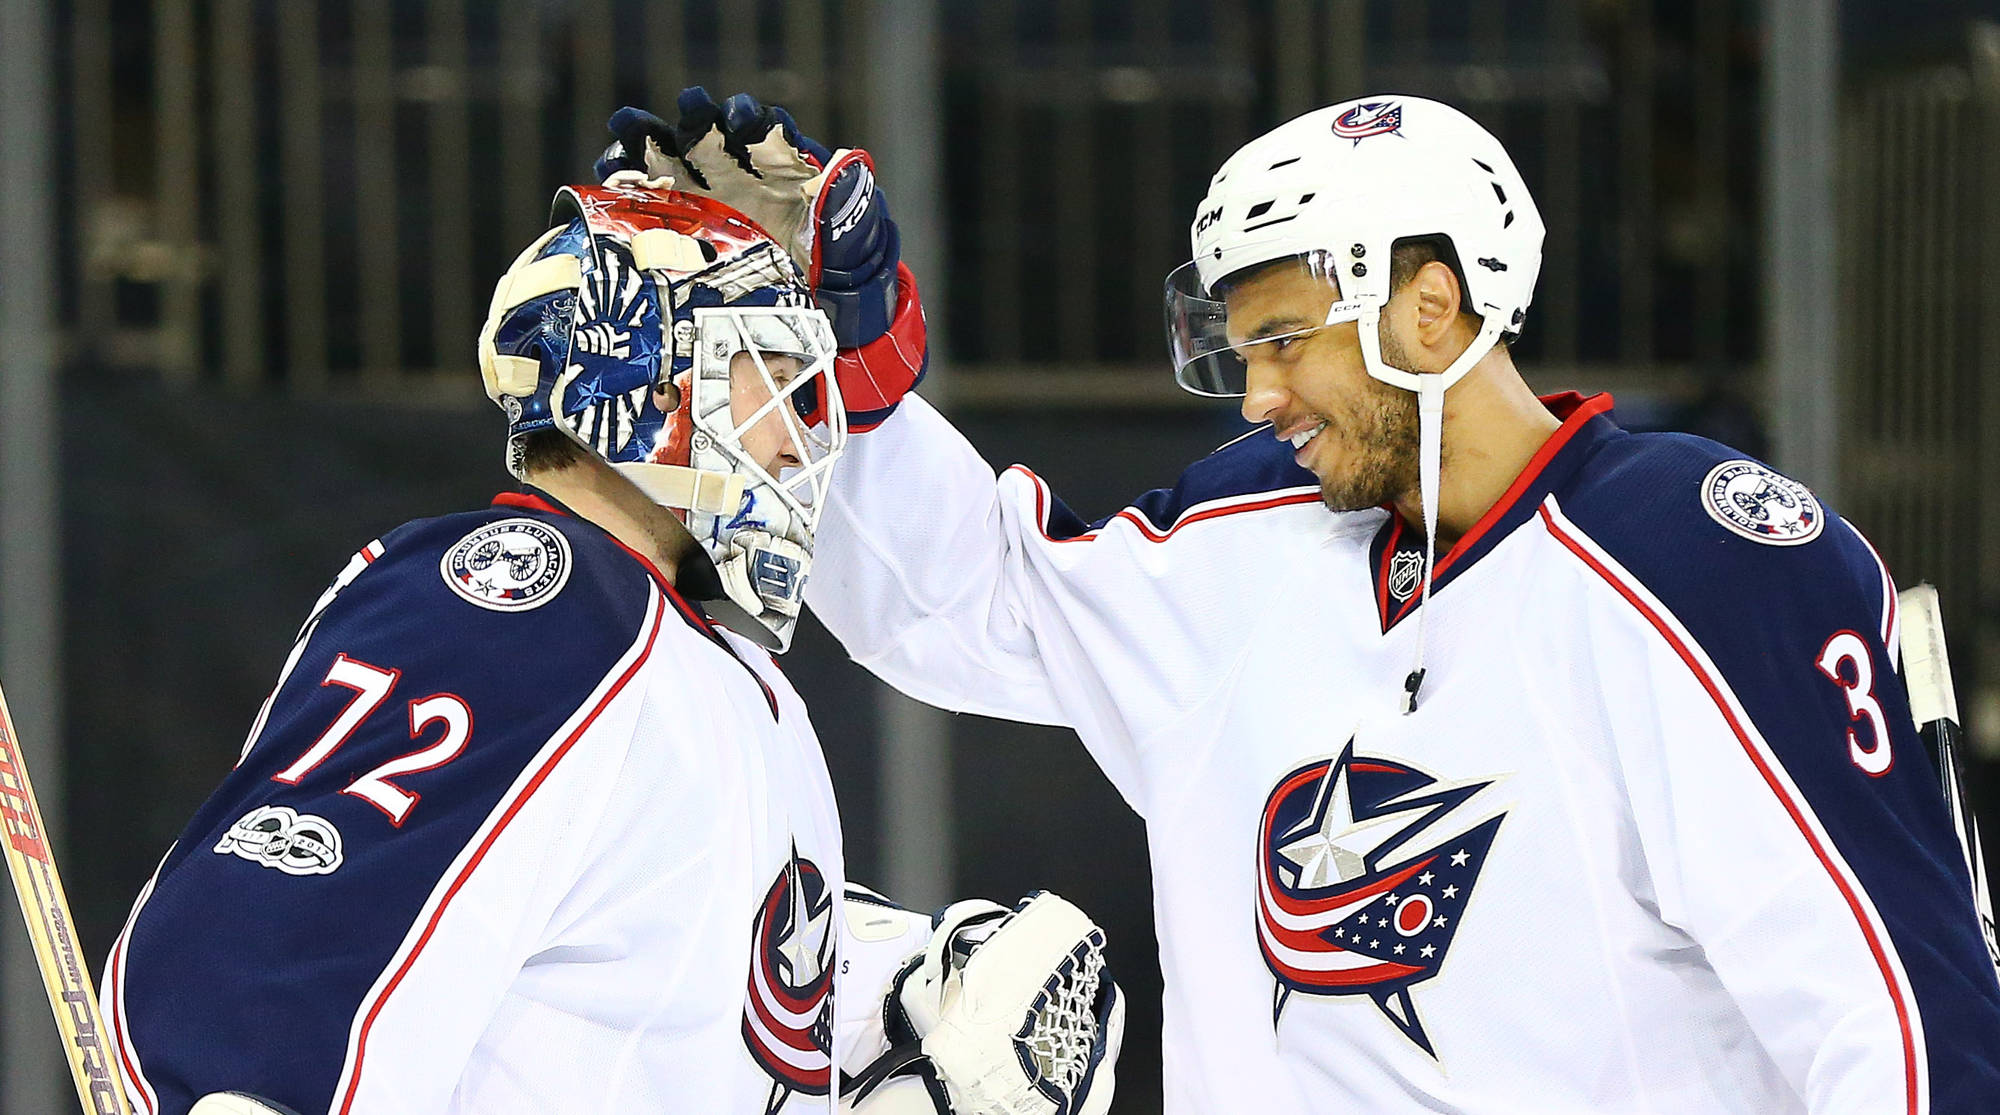 For 2018, Columbus Should Host an Outdoor Game